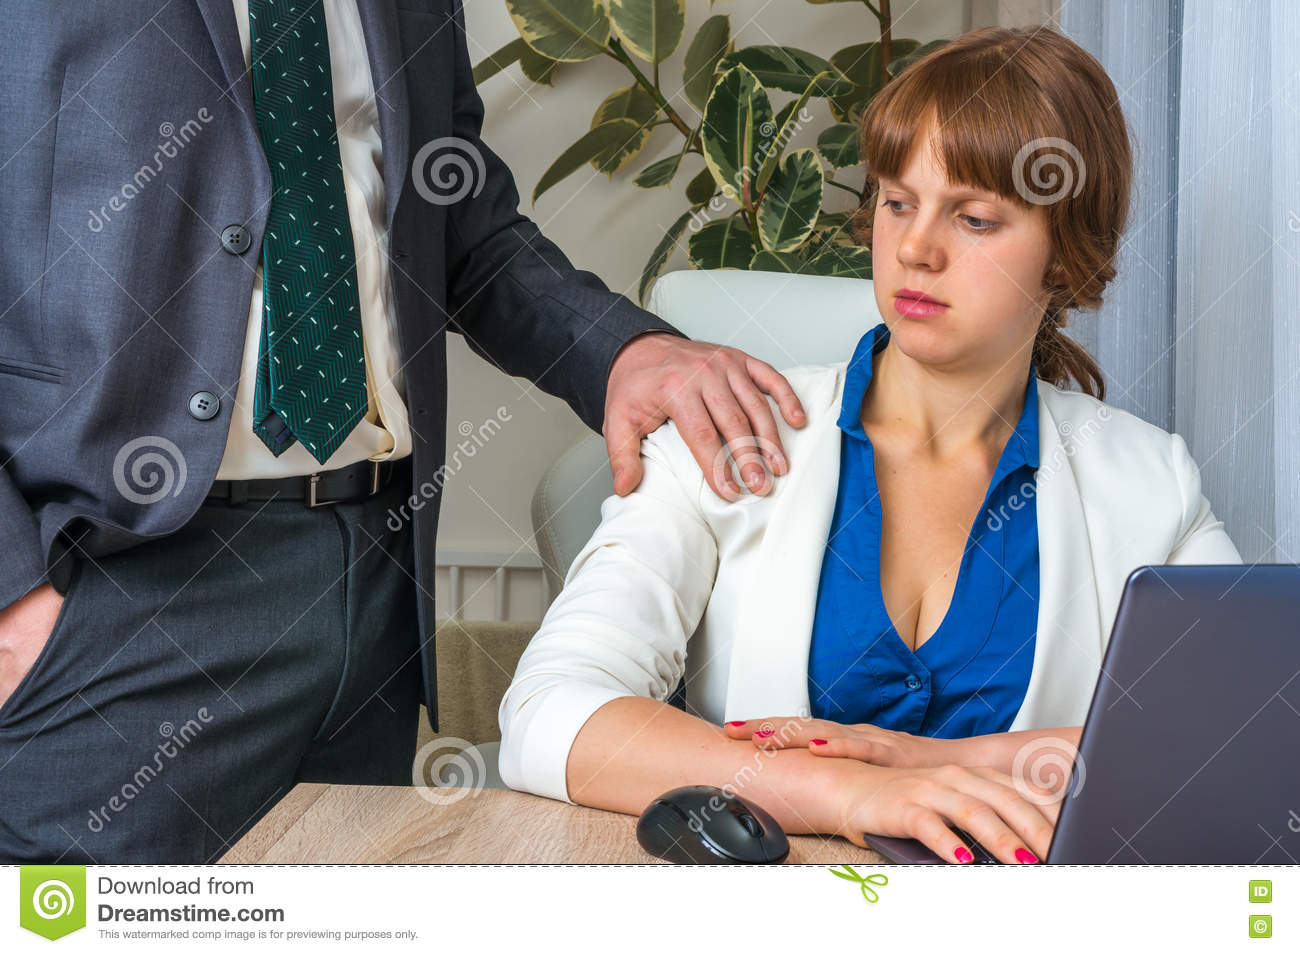 Man touching woman`s shoulder - sexual harassment in office